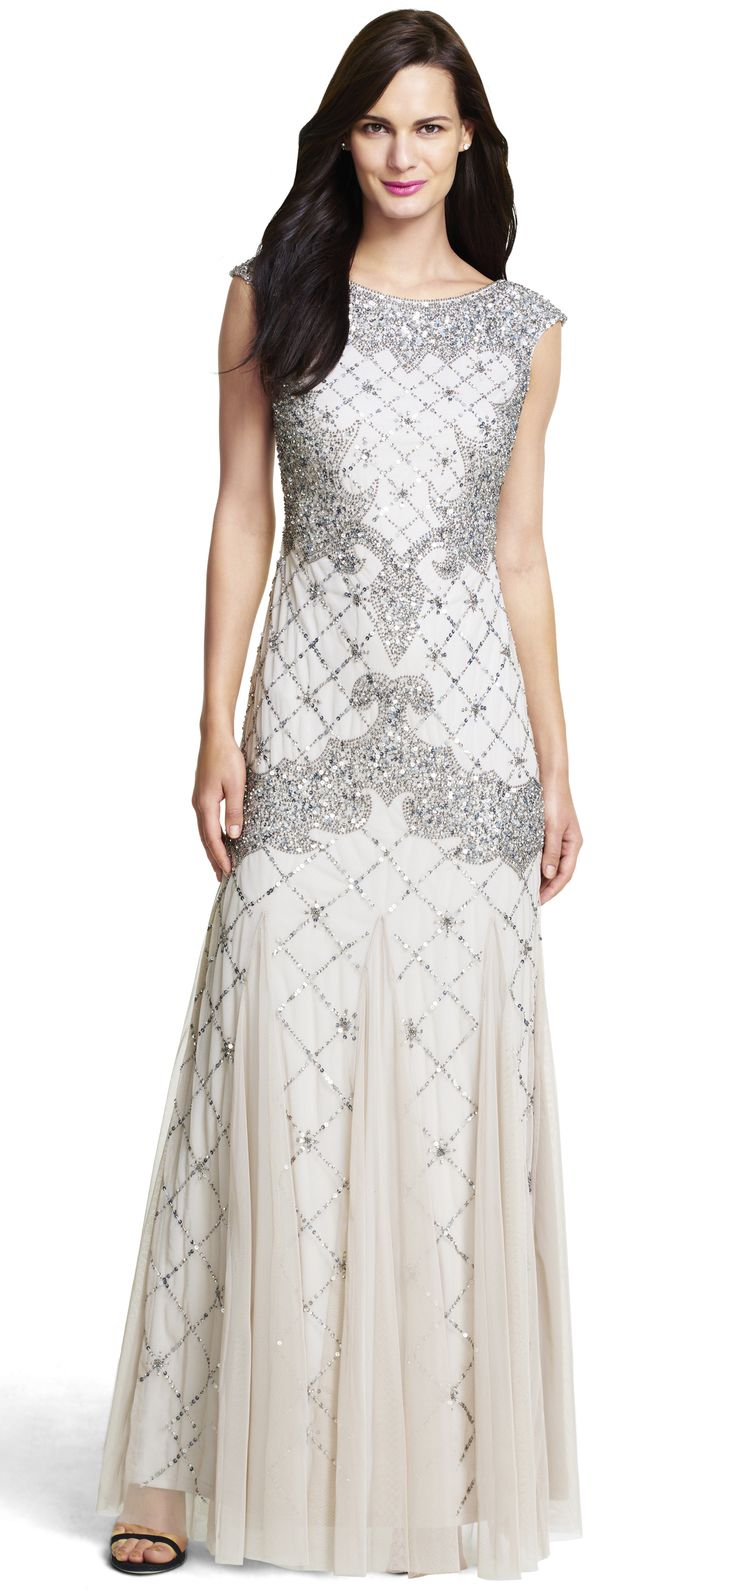 Pinterest flapper wedding dresses 1920s style and adrianna papell - Shop The Adrianna Papell Bridal Suite Now Crafted With Artisanal Precision Adrianna Papell Offers Wedding Dresses Bridesmaid Dresses Wedding Reception